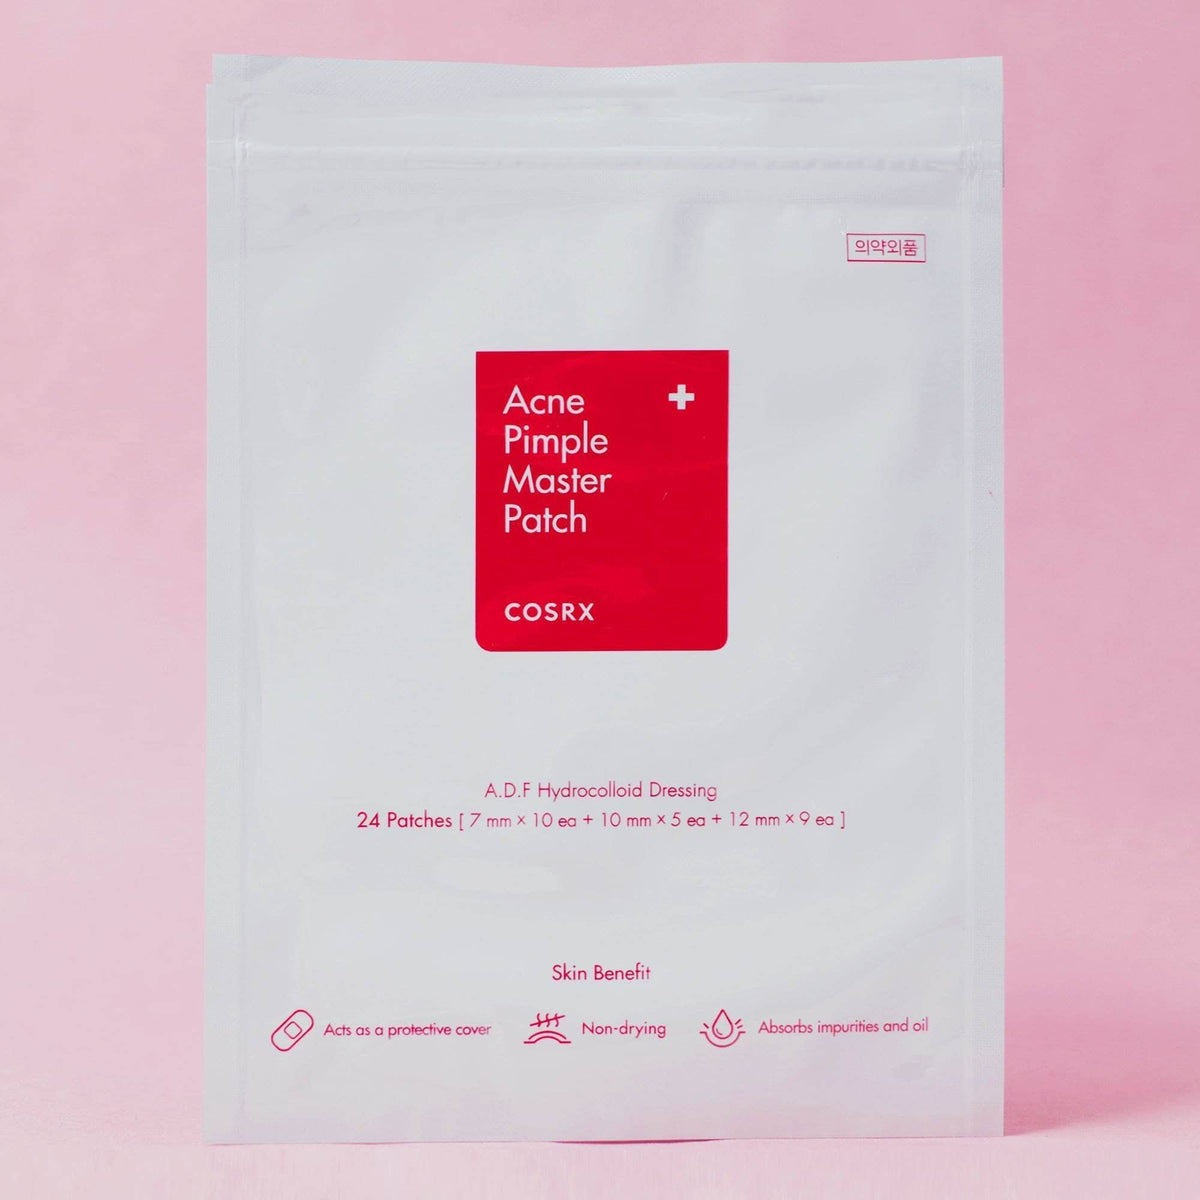 COSRX 2 Acne Pimple Master 24 patches